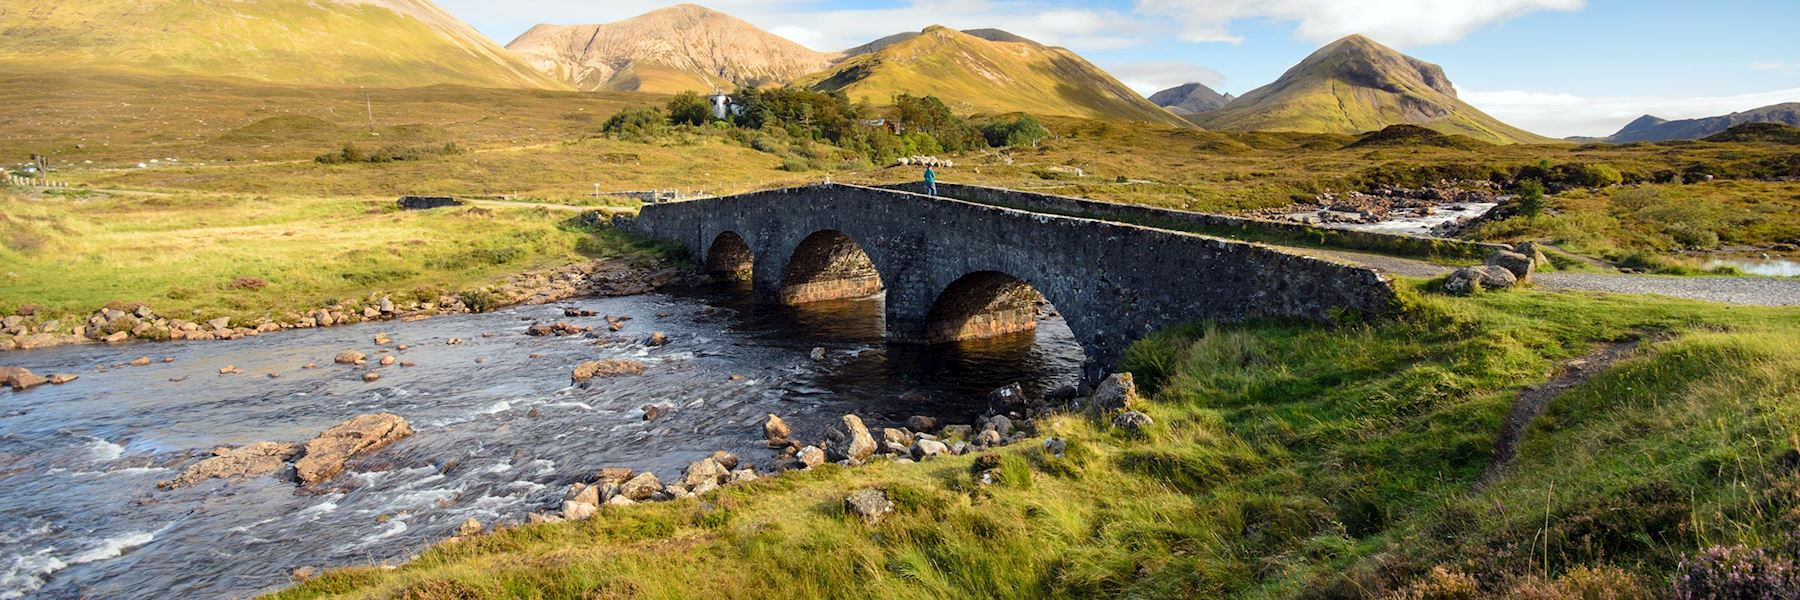 scotland vacations tailor made scotland tours audley travel